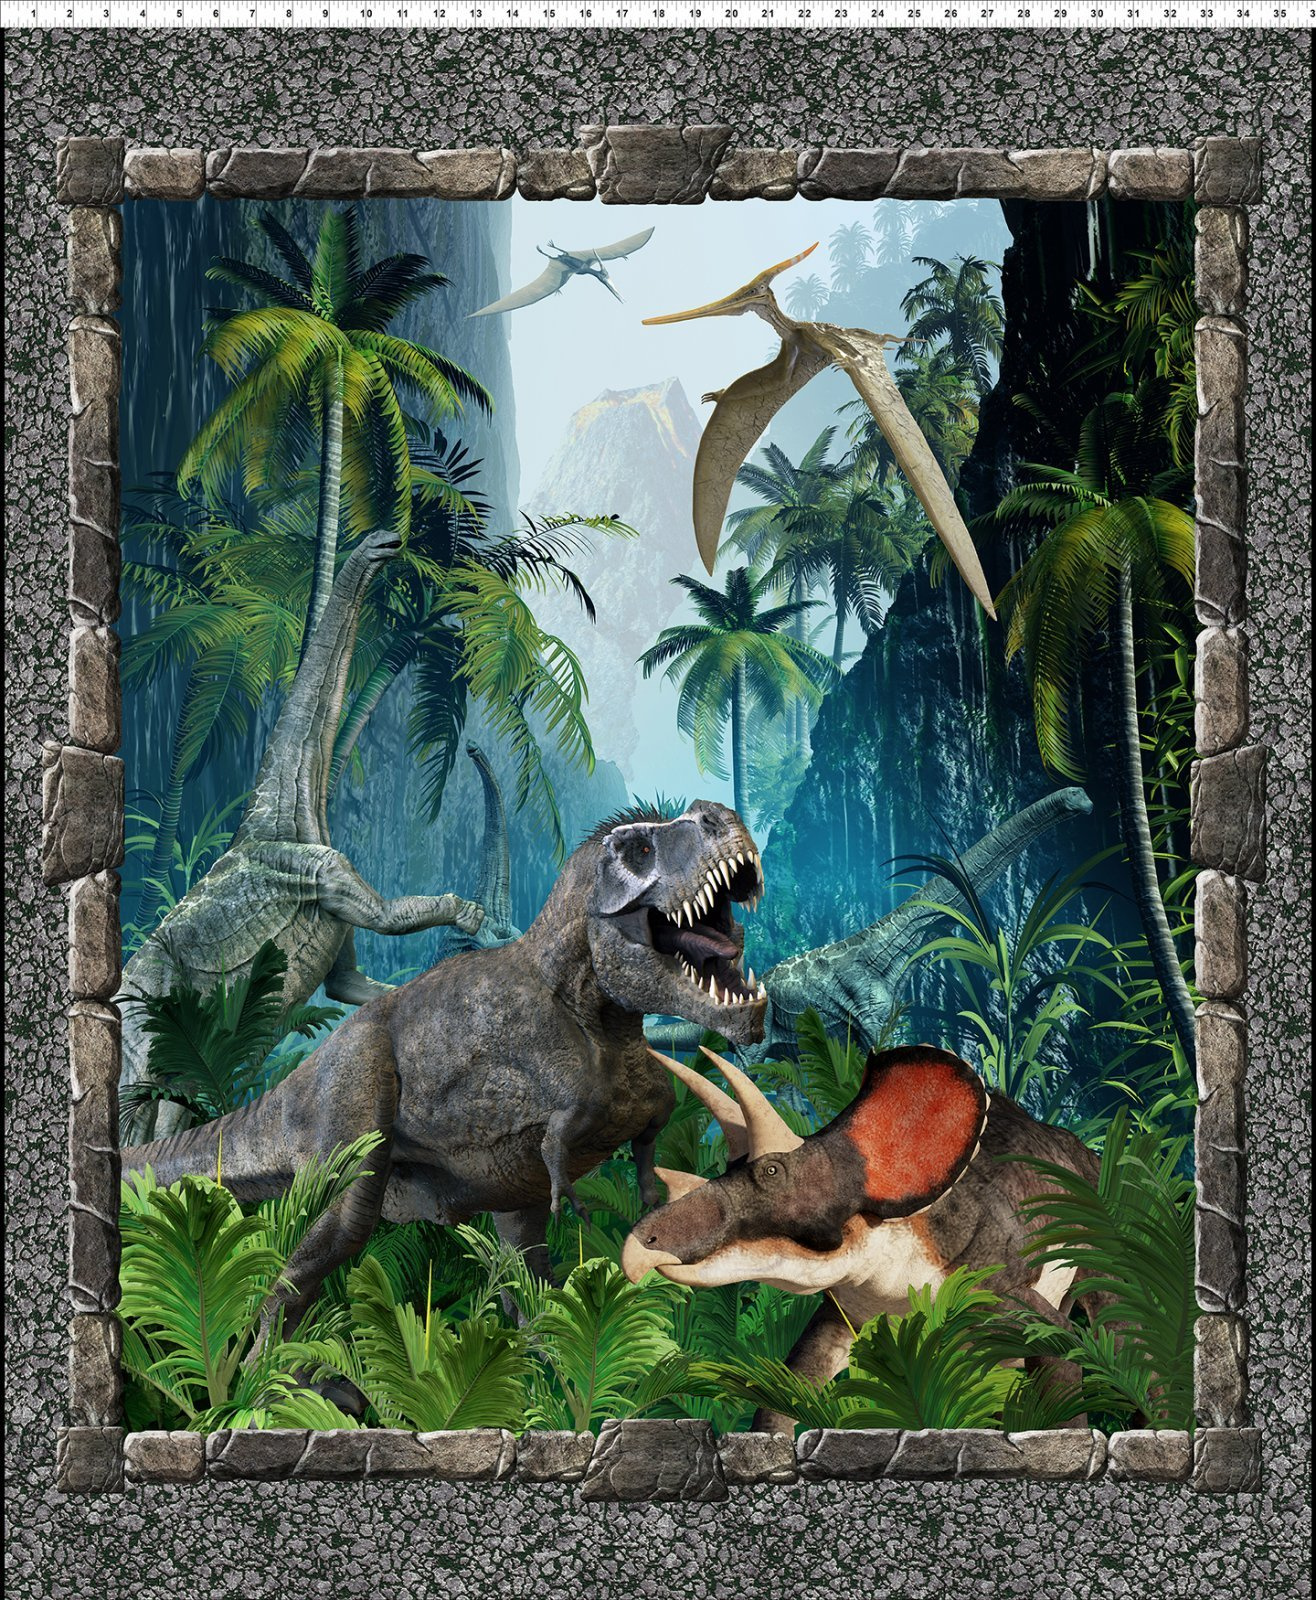 INTH-1JUR 1 - JURASSIC BY IN THE BEGINNING DINOSAUR LARGE PANEL MULTI-Delivery December 2020